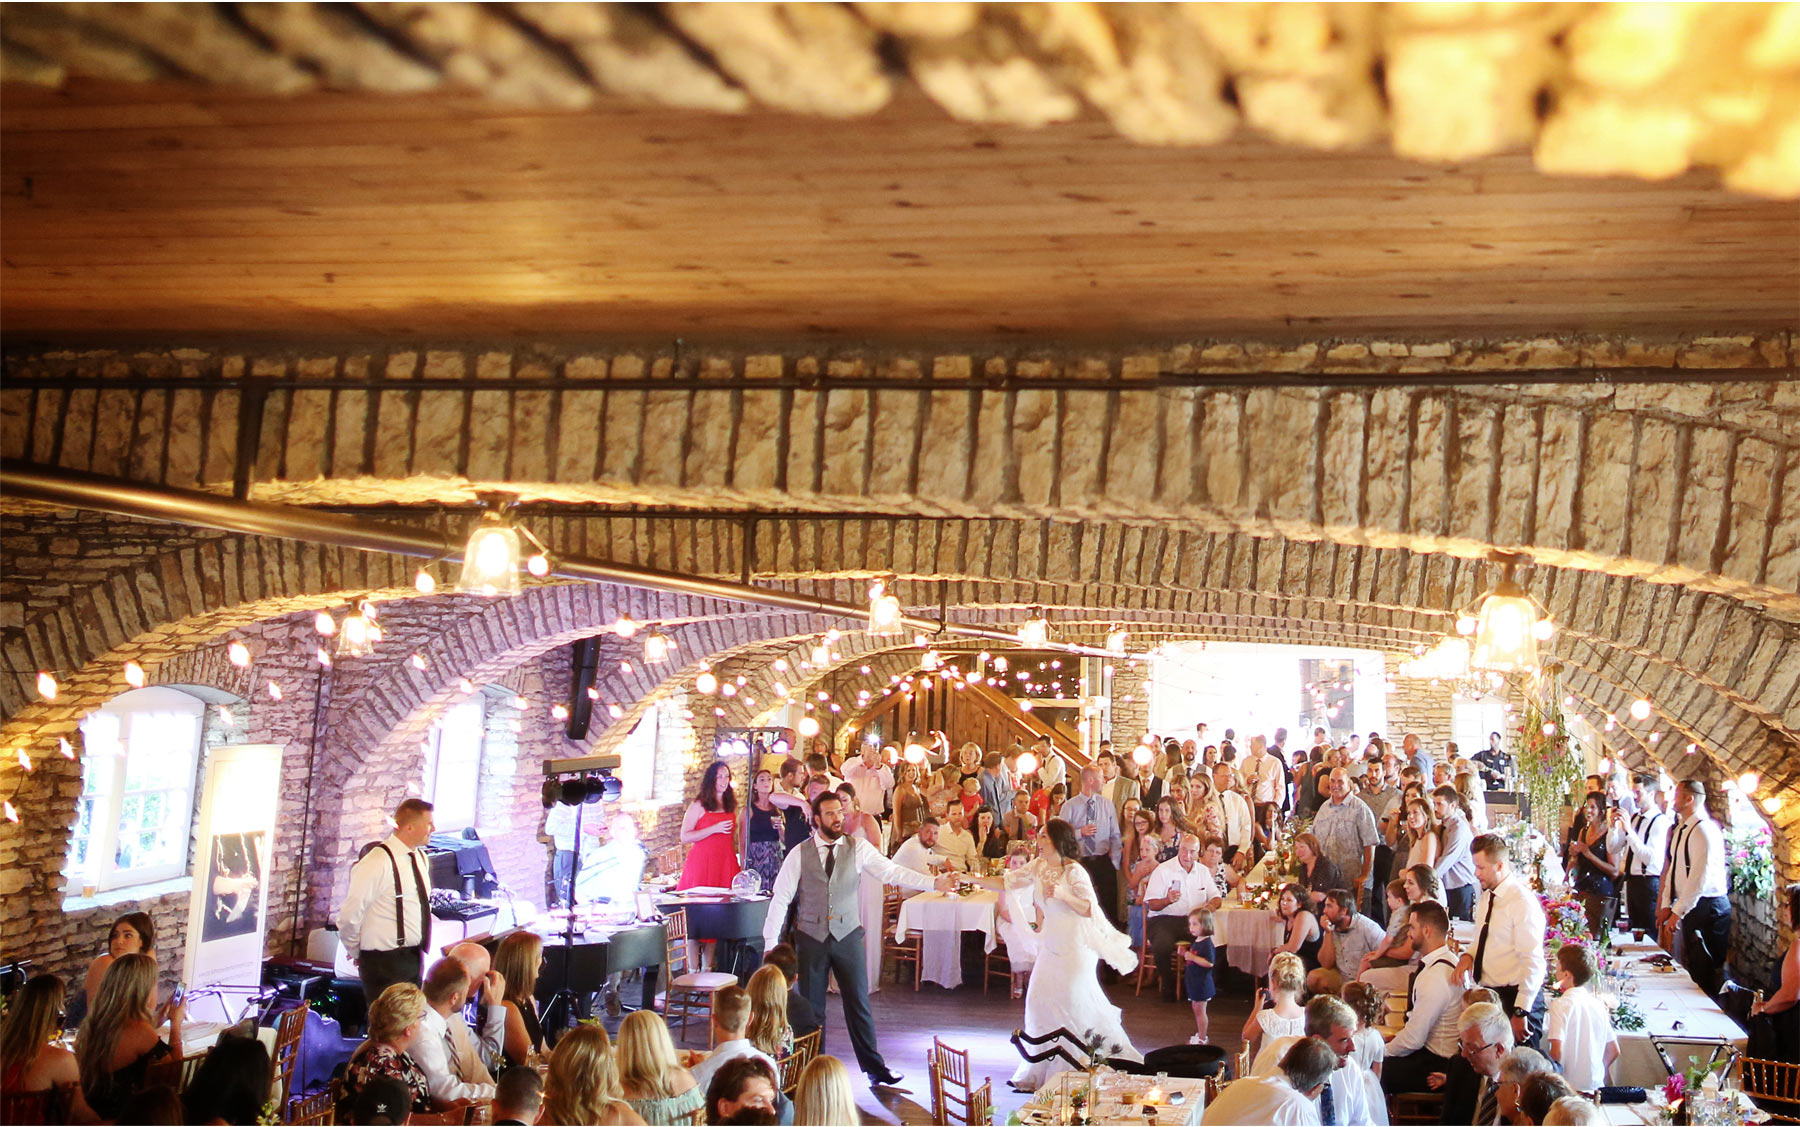 24-Vick-Photography-Rochester-Minnesota-Mayowood-Stone-Barn-Country-Wedding-Reception-Dance-Lizz-and-Brady.jpg